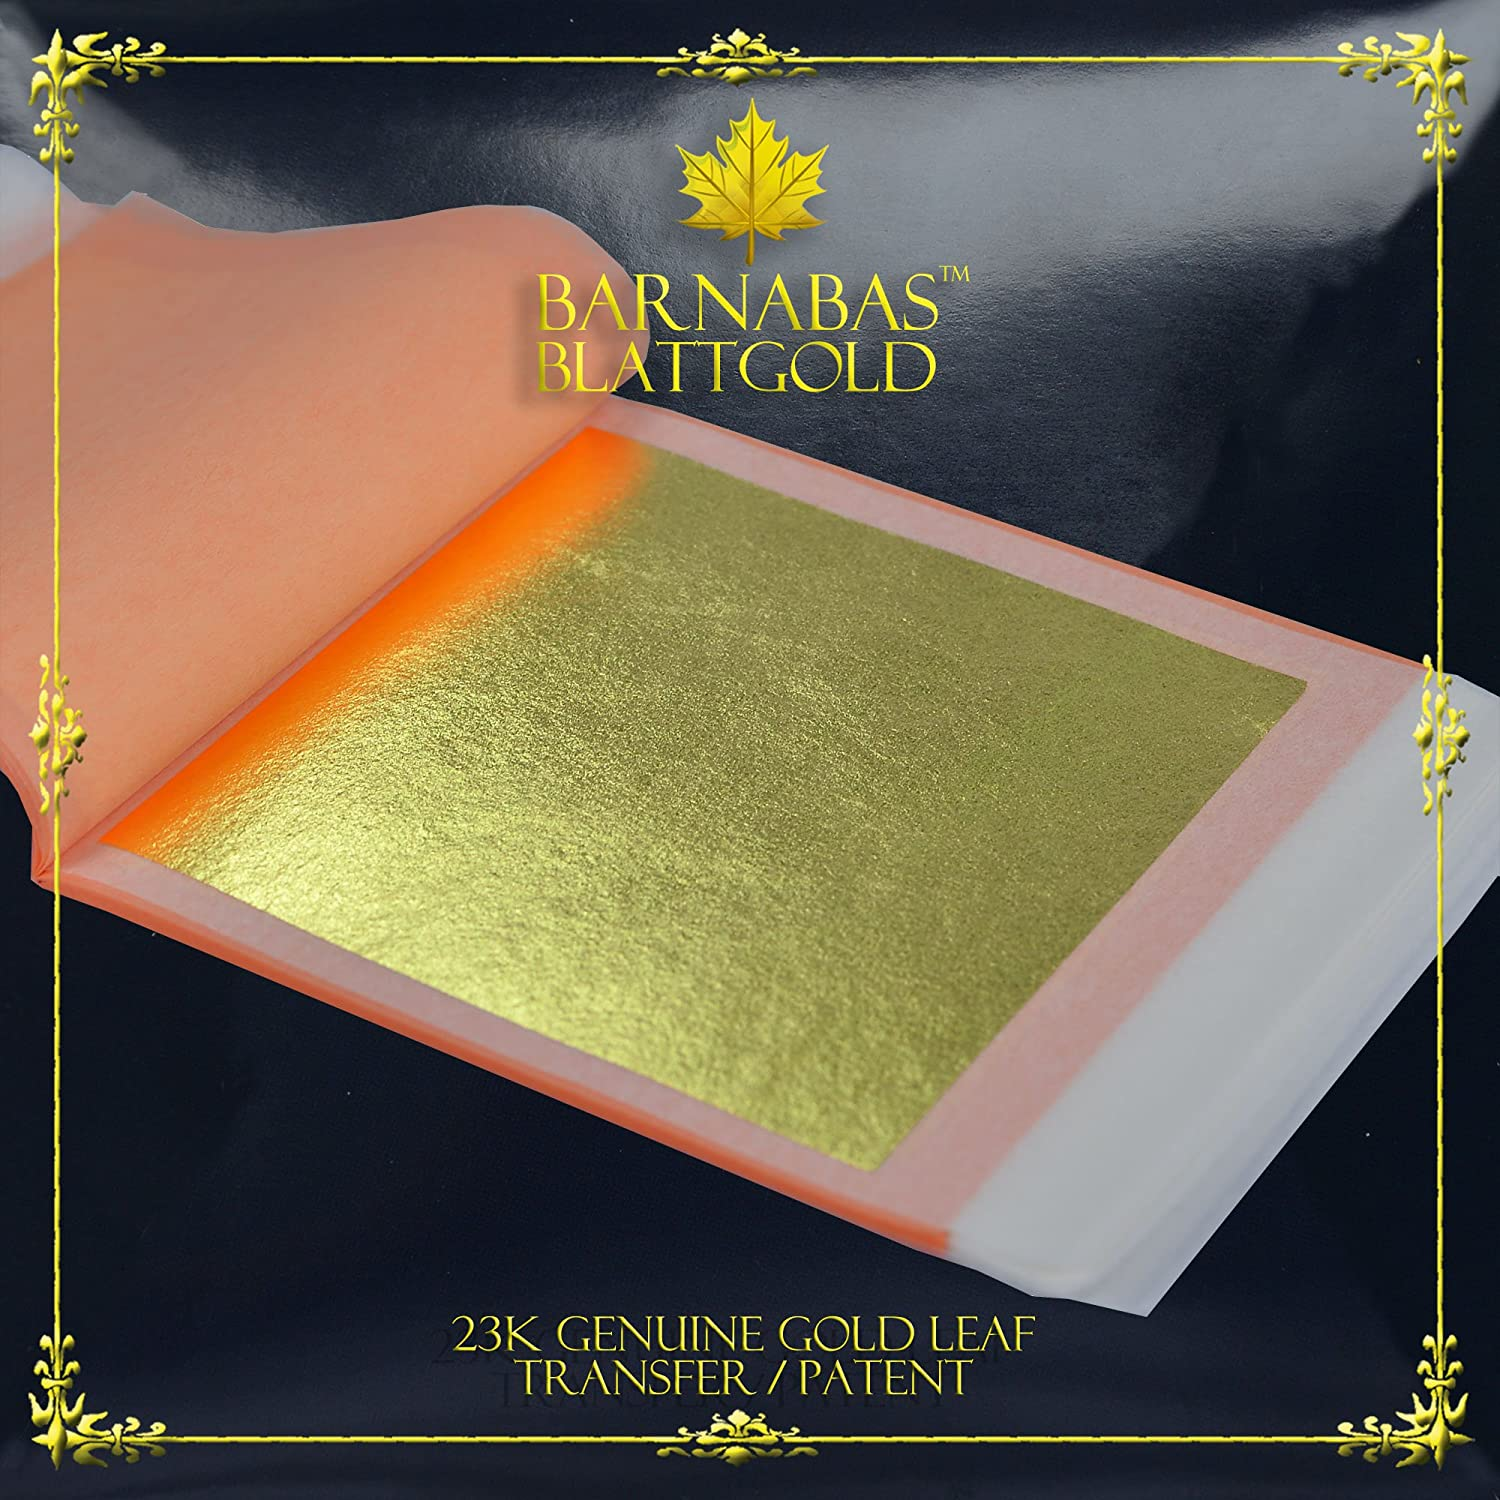 Genuine Gold Leaf Sheets 23k - by Barnabas Blattgold - 3.4 inches - 10 Sheets Booklet - Transfer Patent Leaf G85-23K*-25